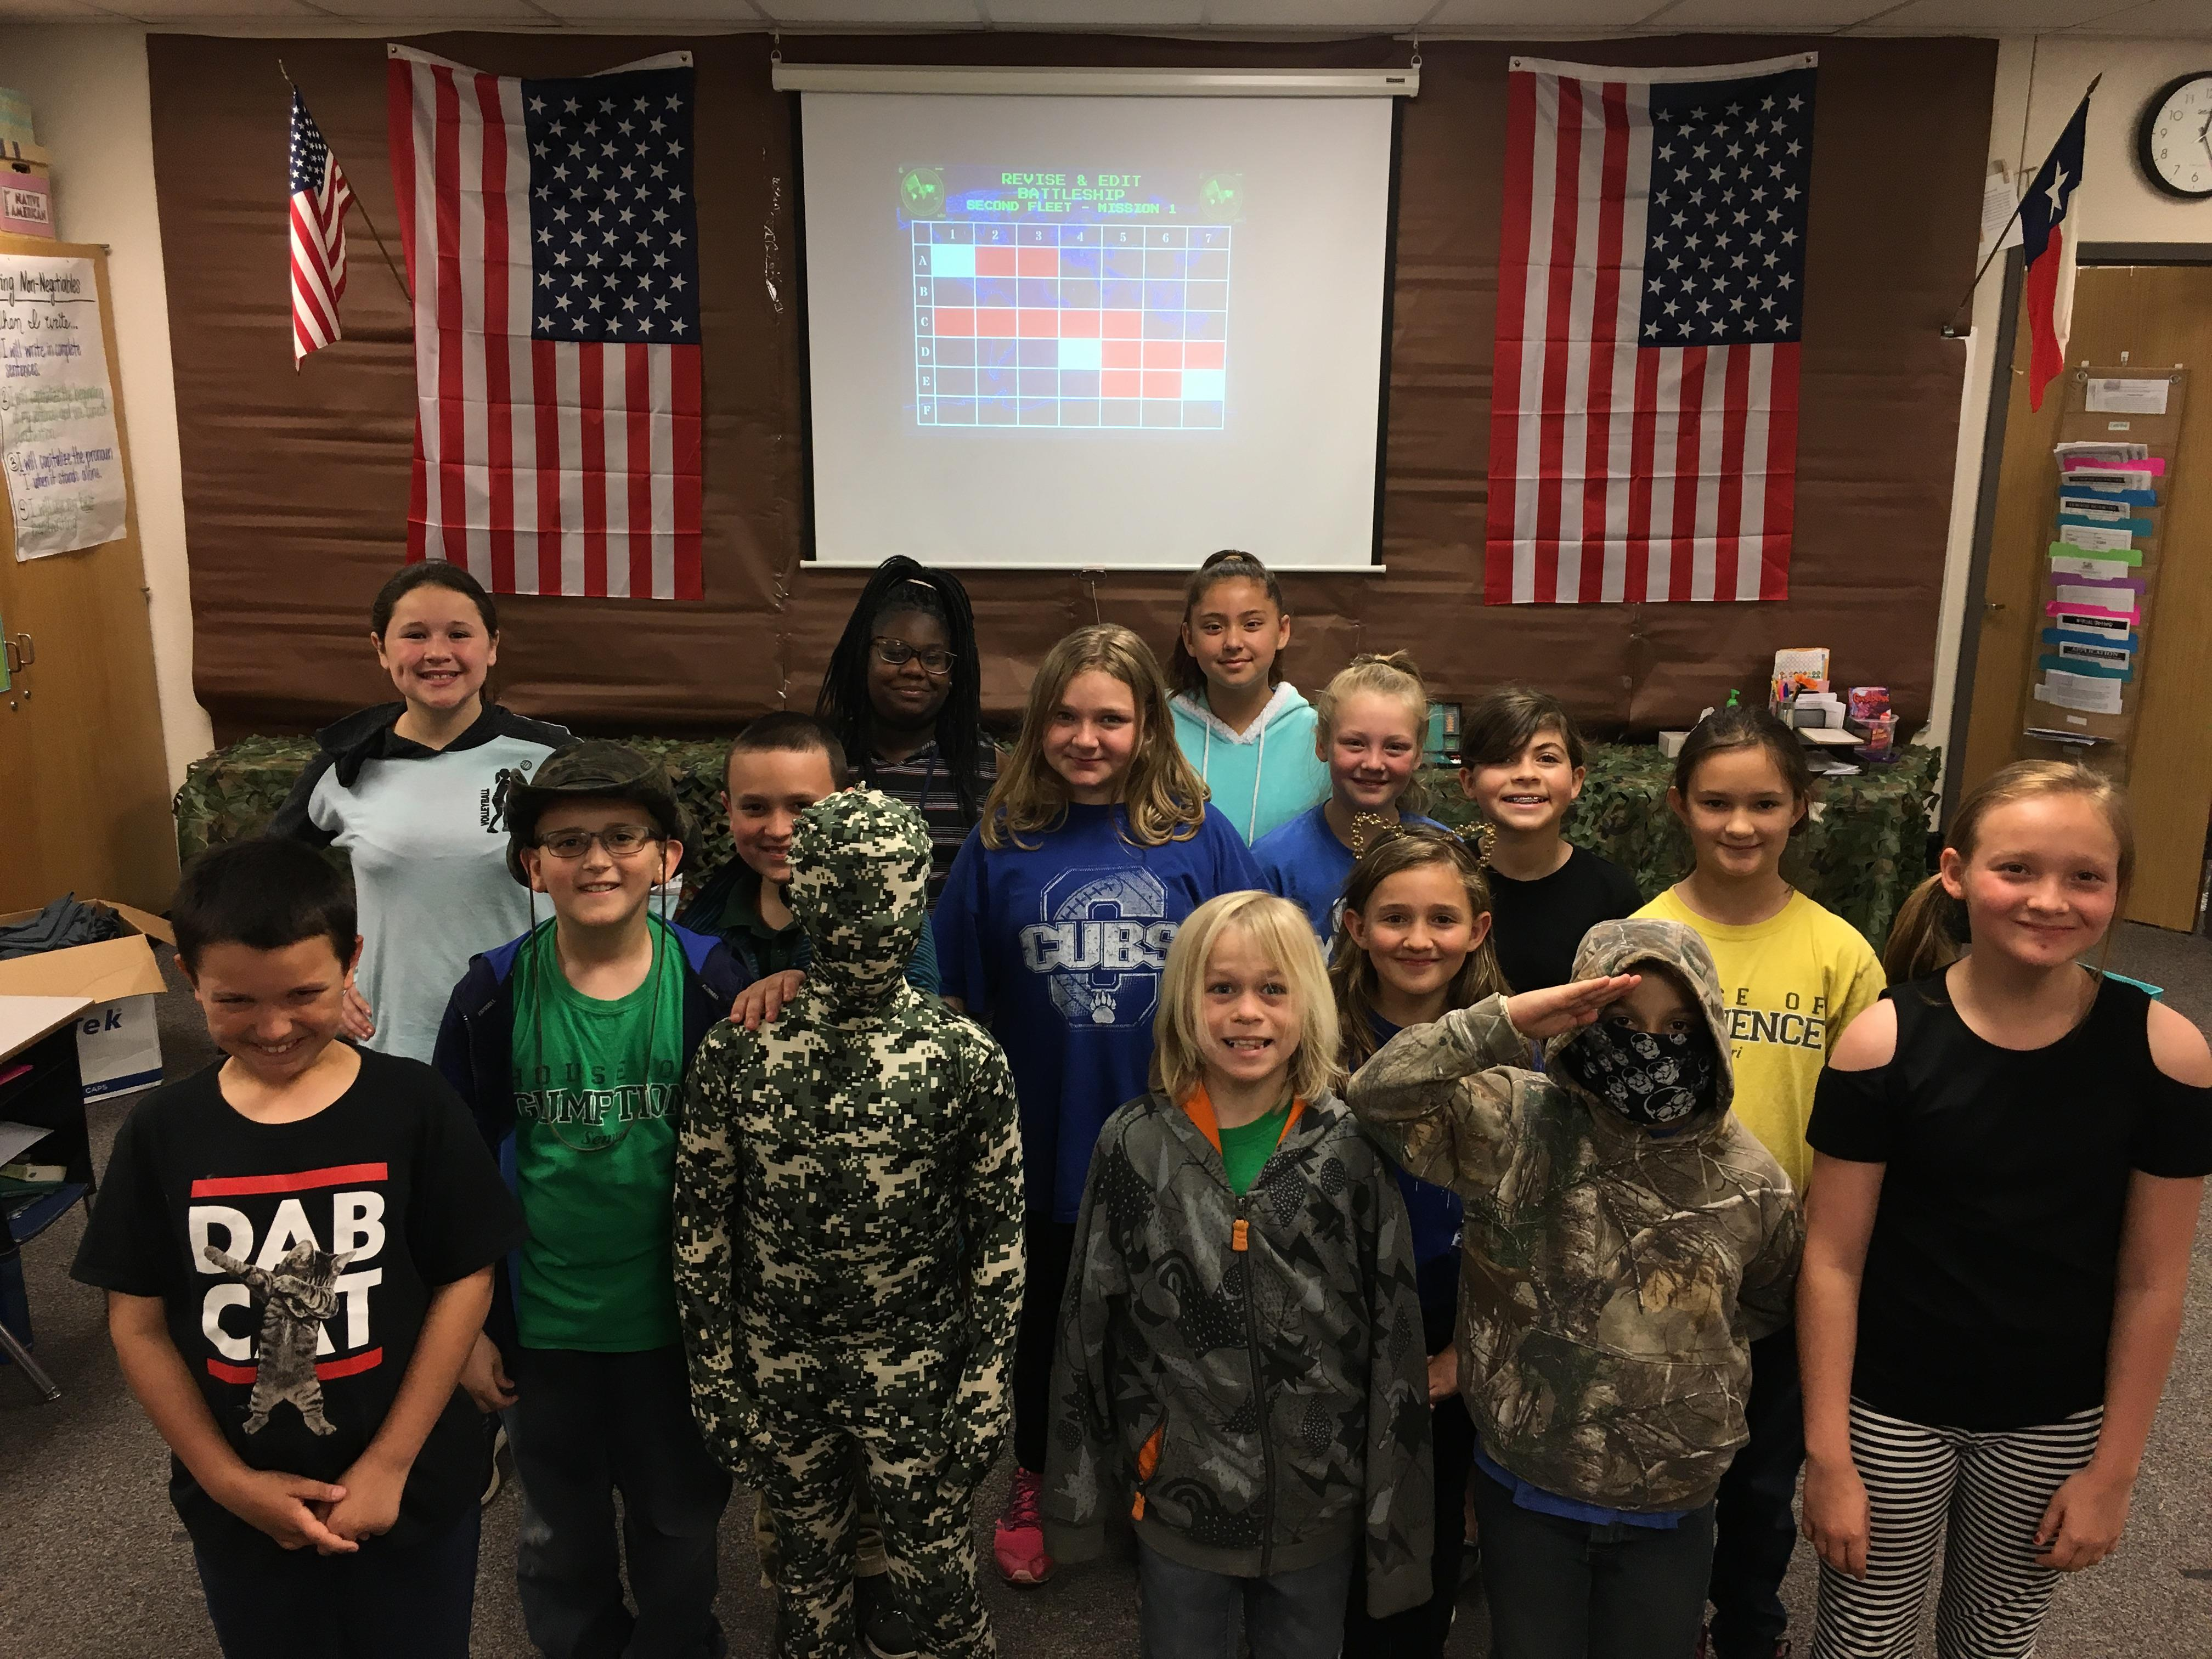 West Fourth Graders Prepare for STAAR Test with Life-Size Battleship Game